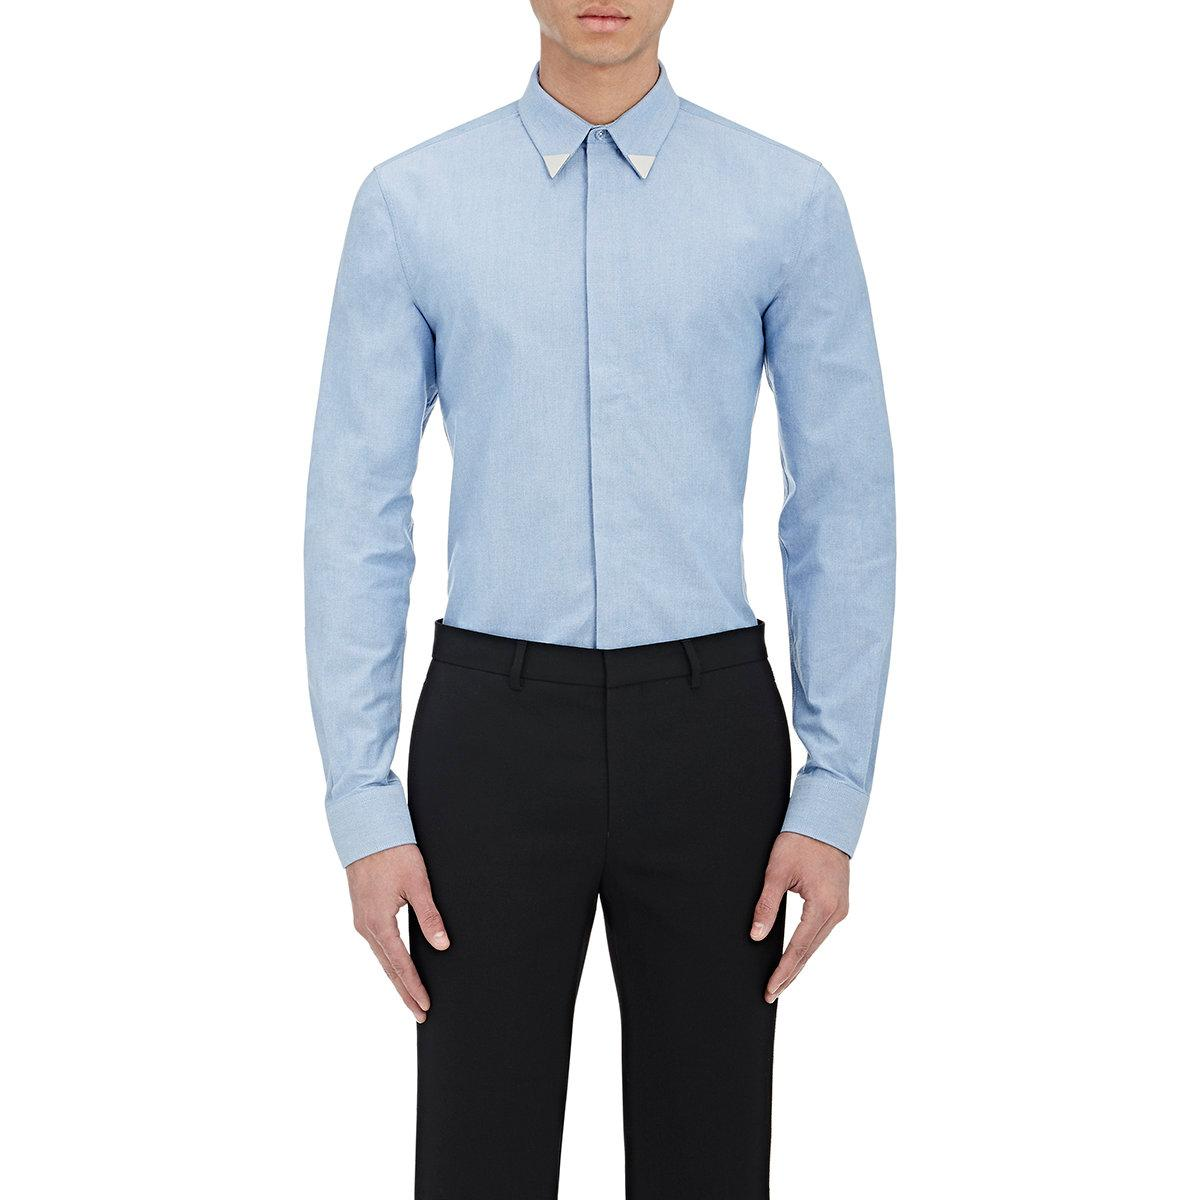 Givenchy mens clothing online